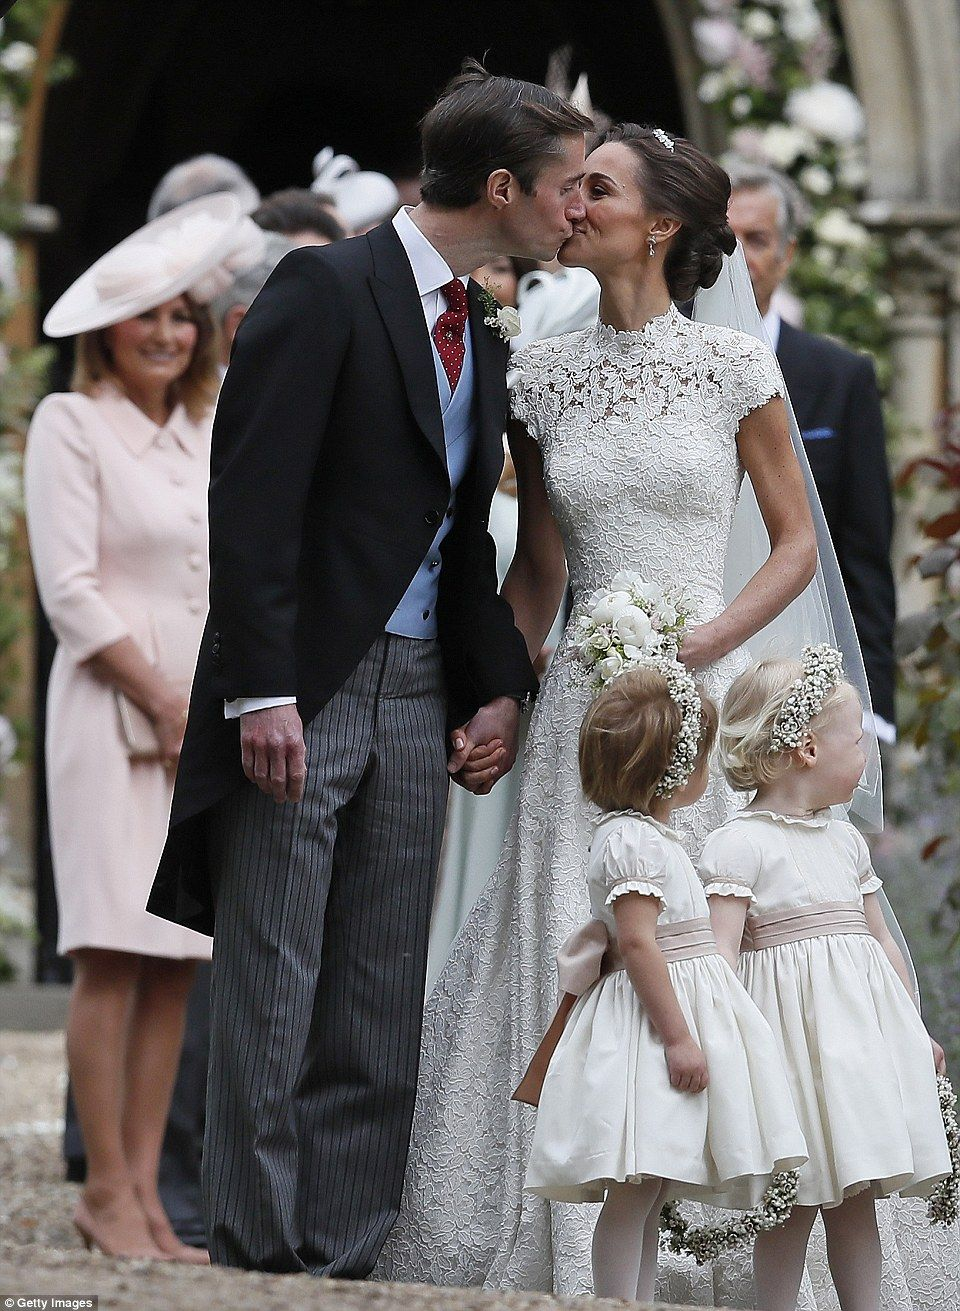 Pippa middleton and james matthews leave the church as man and wife